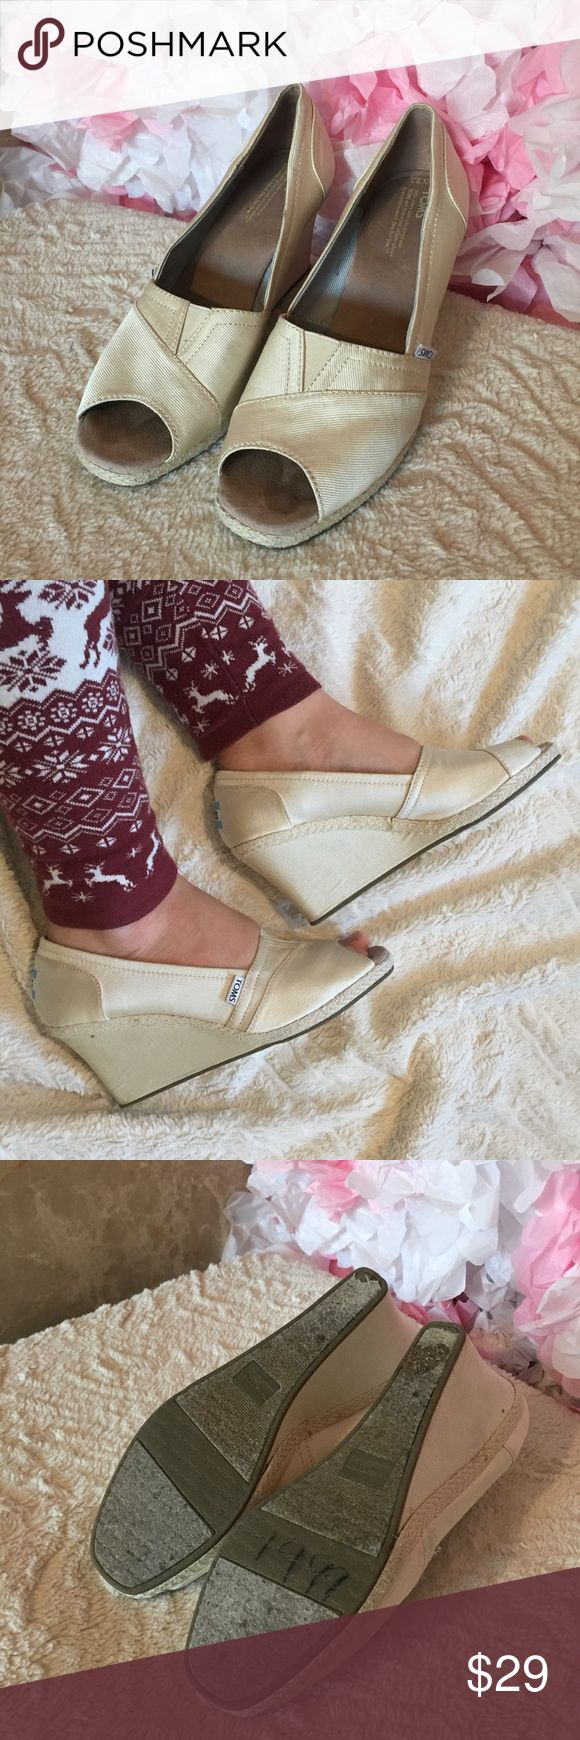 Toms wedges beige In good condition. Wide size. Need to be cleaned Toms Shoes Wedges